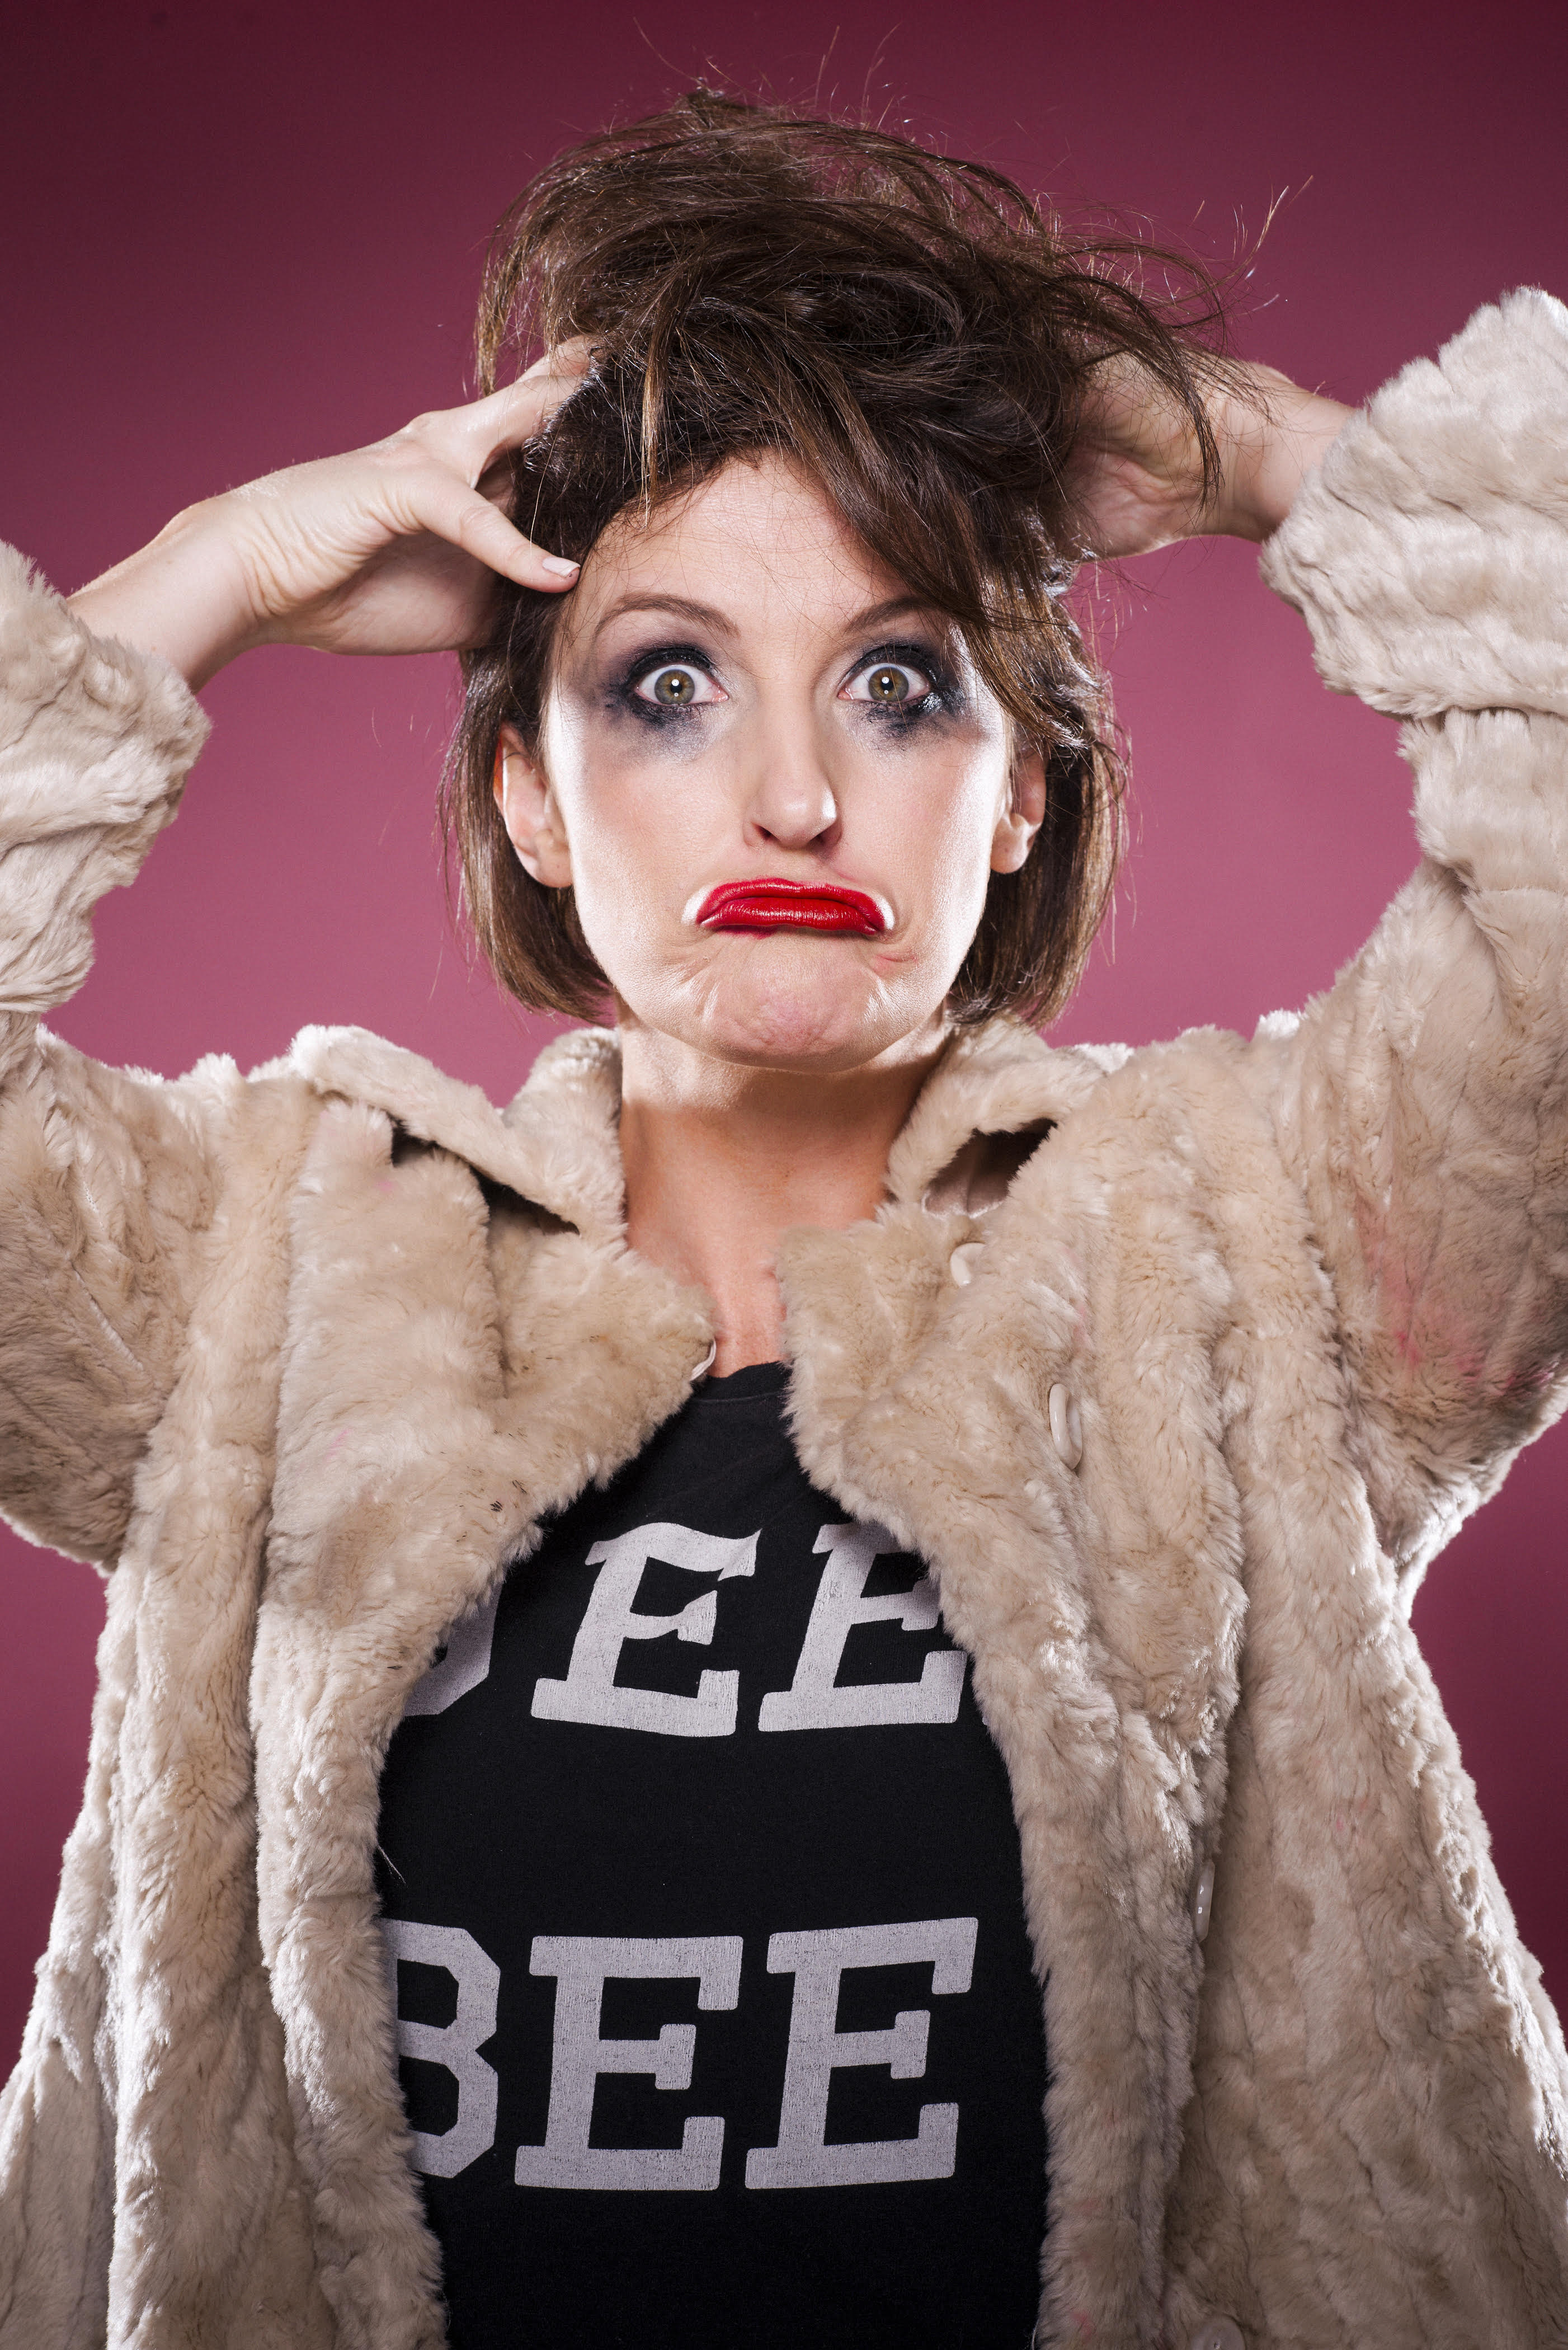 Comedian 'delights' with NI tour of one-woman show